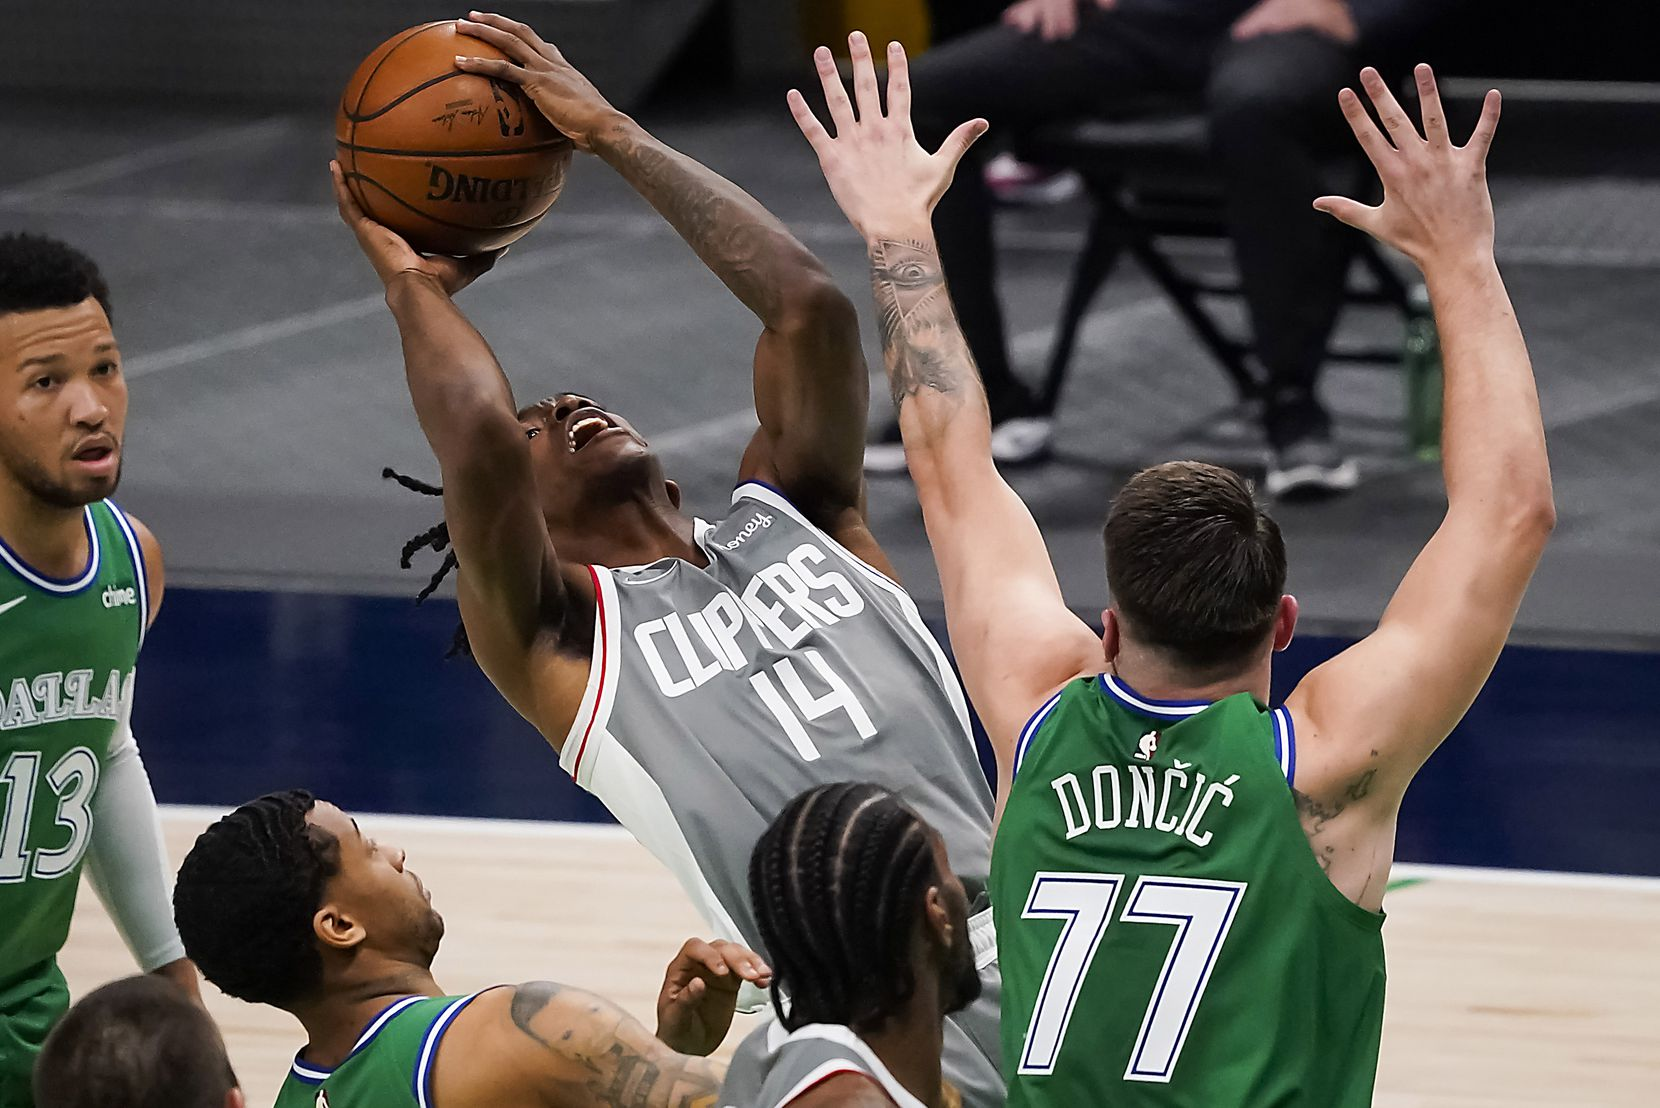 LA Clippers guard Terance Mann (14) is defended by Dallas Mavericks guard Luka Doncic (77) during the first quarter of an NBA basketball game at American Airlines Center on Wednesday, March 17, 2021, in Dallas.